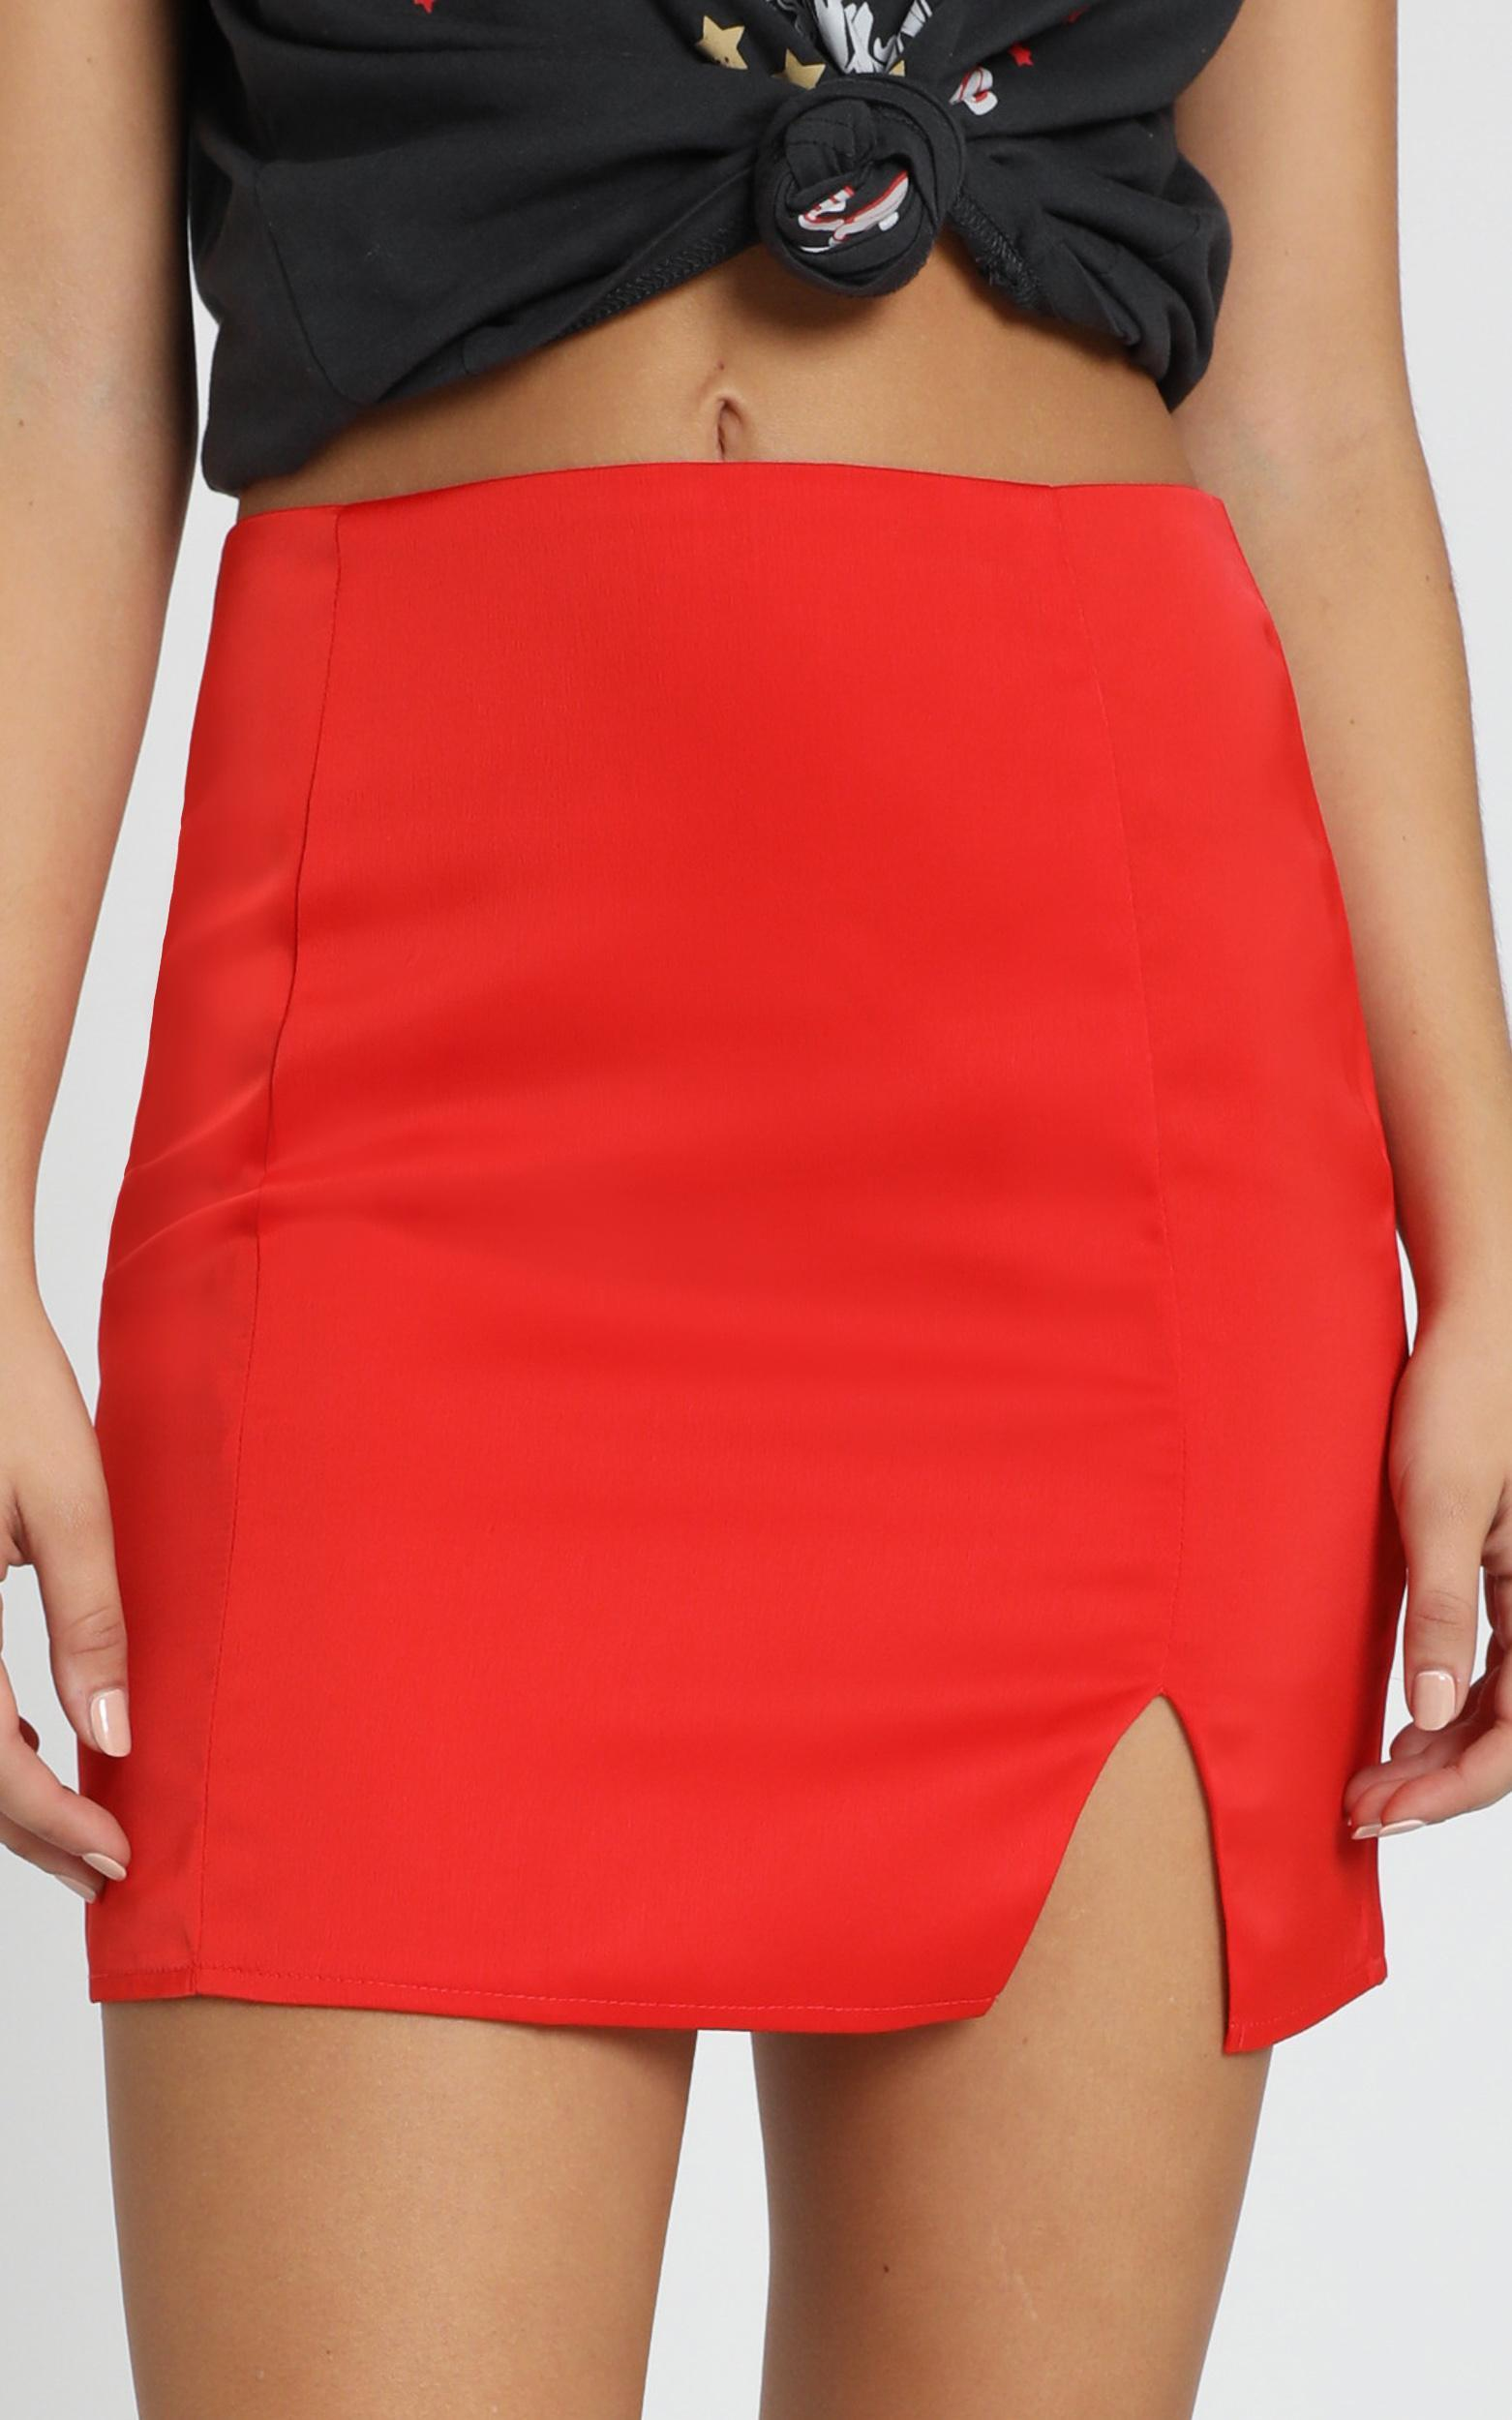 Total Bombshell Skirt In red - 20 (XXXXL), Red, hi-res image number null